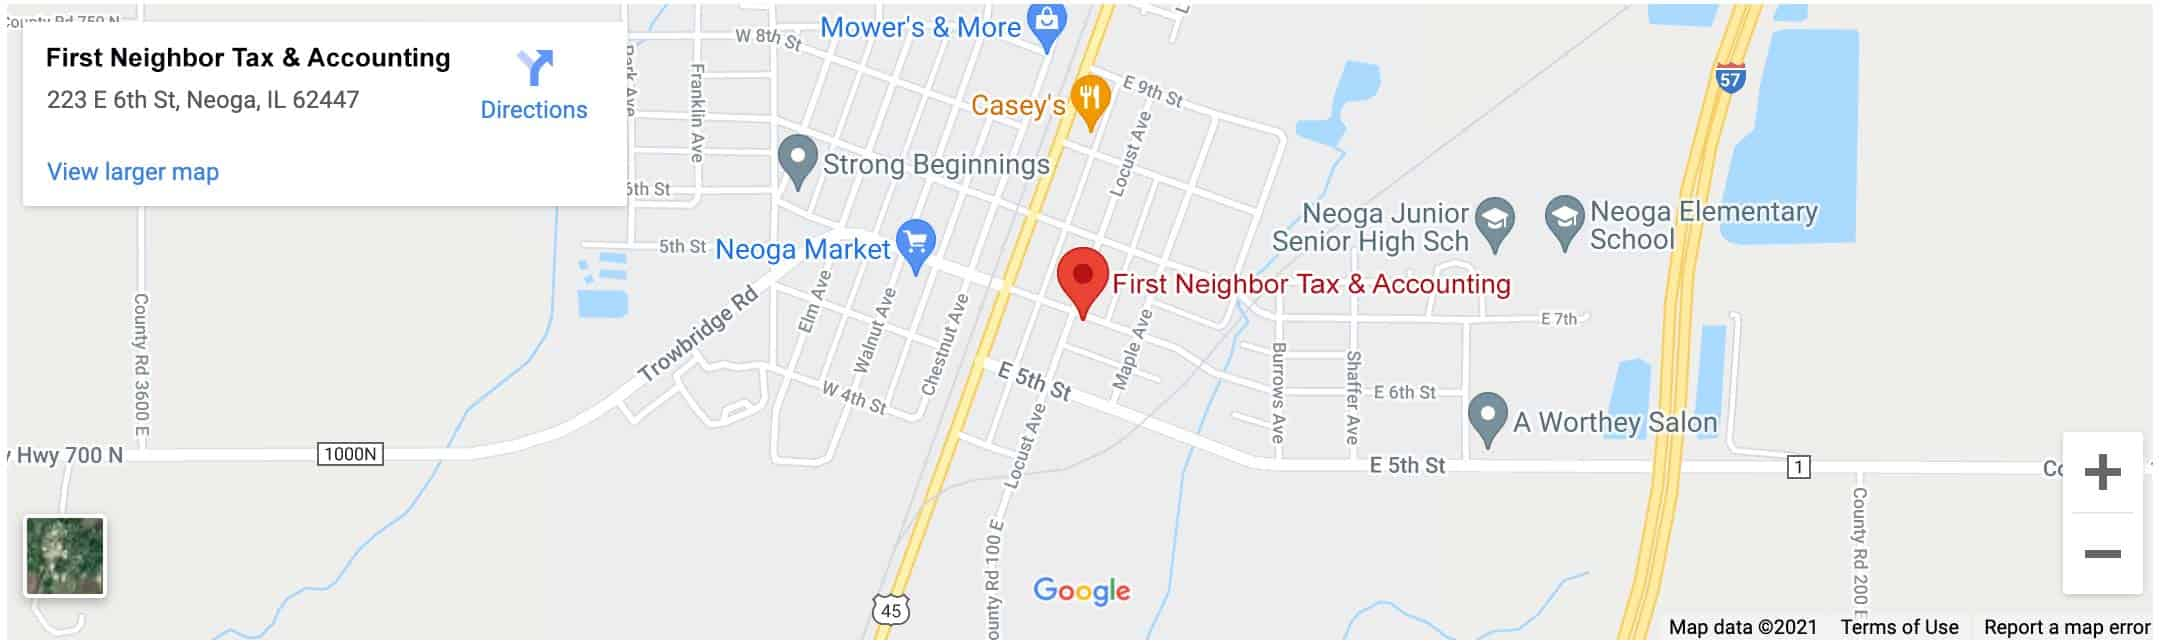 Decorative - First Neighbor Tax & Accounting Neoga Google Map Image